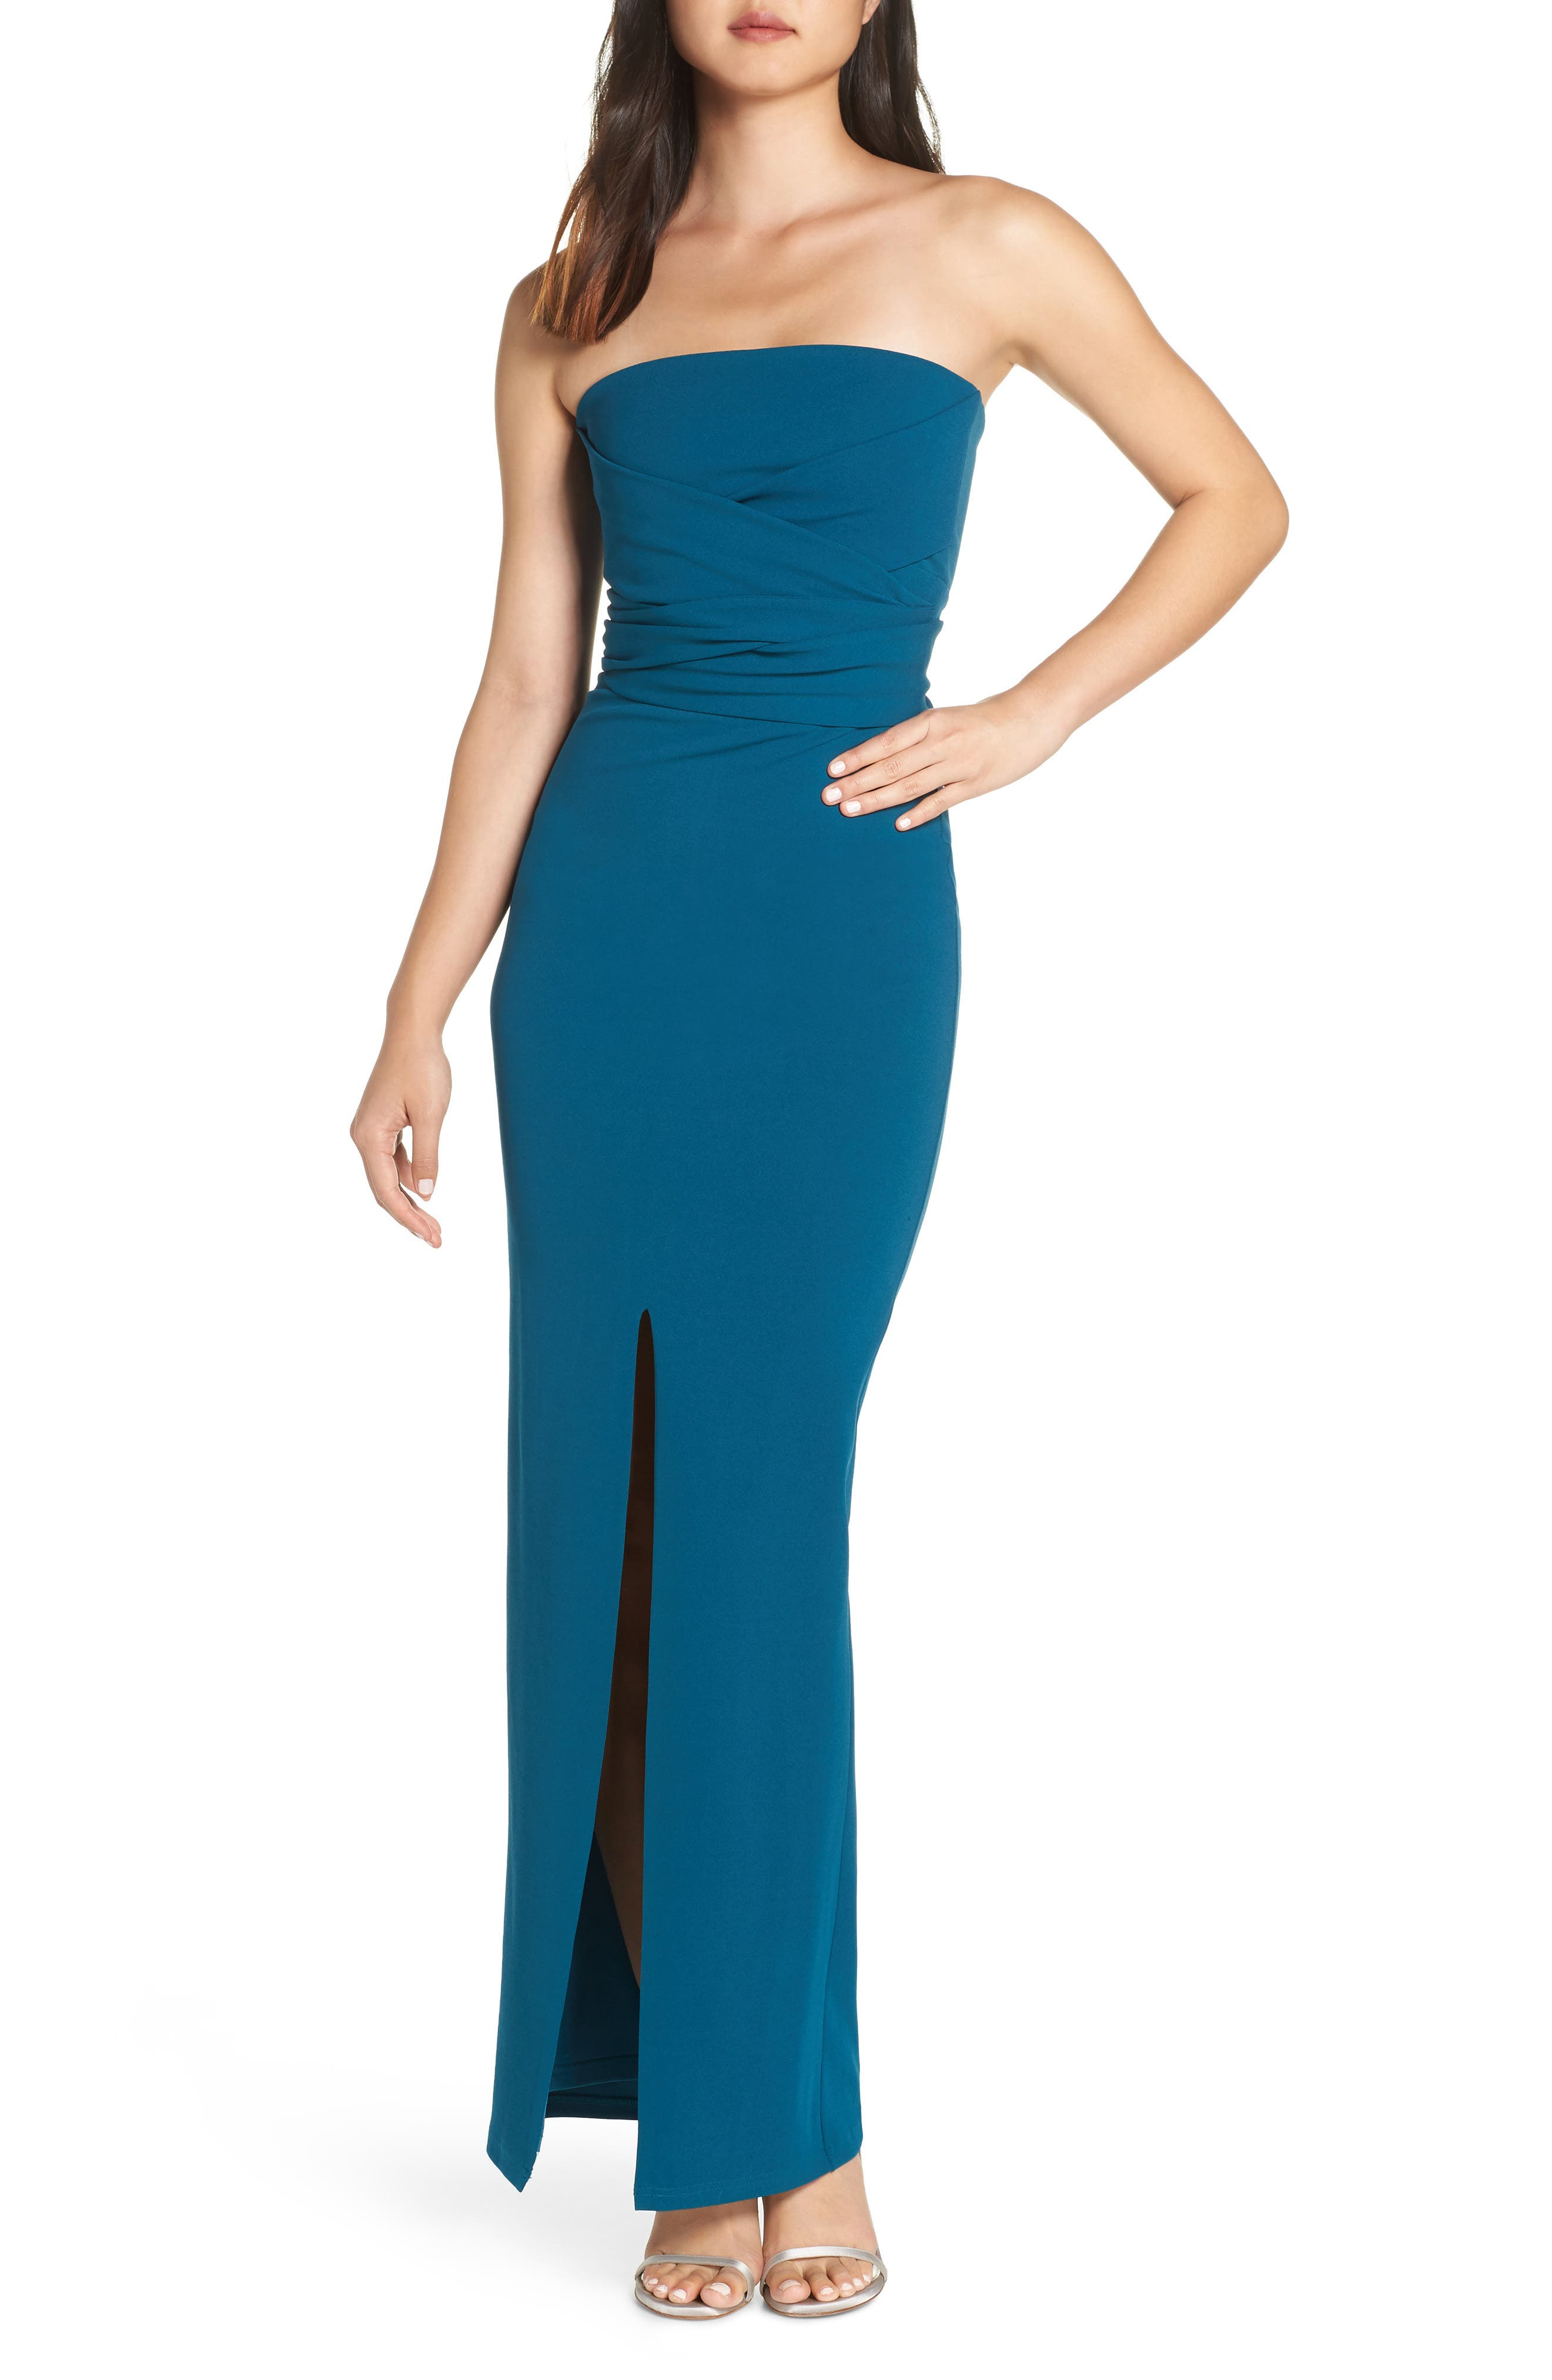 LULUS Own the Night Strapless Maxi Dress, Main, color, TURQUOISE